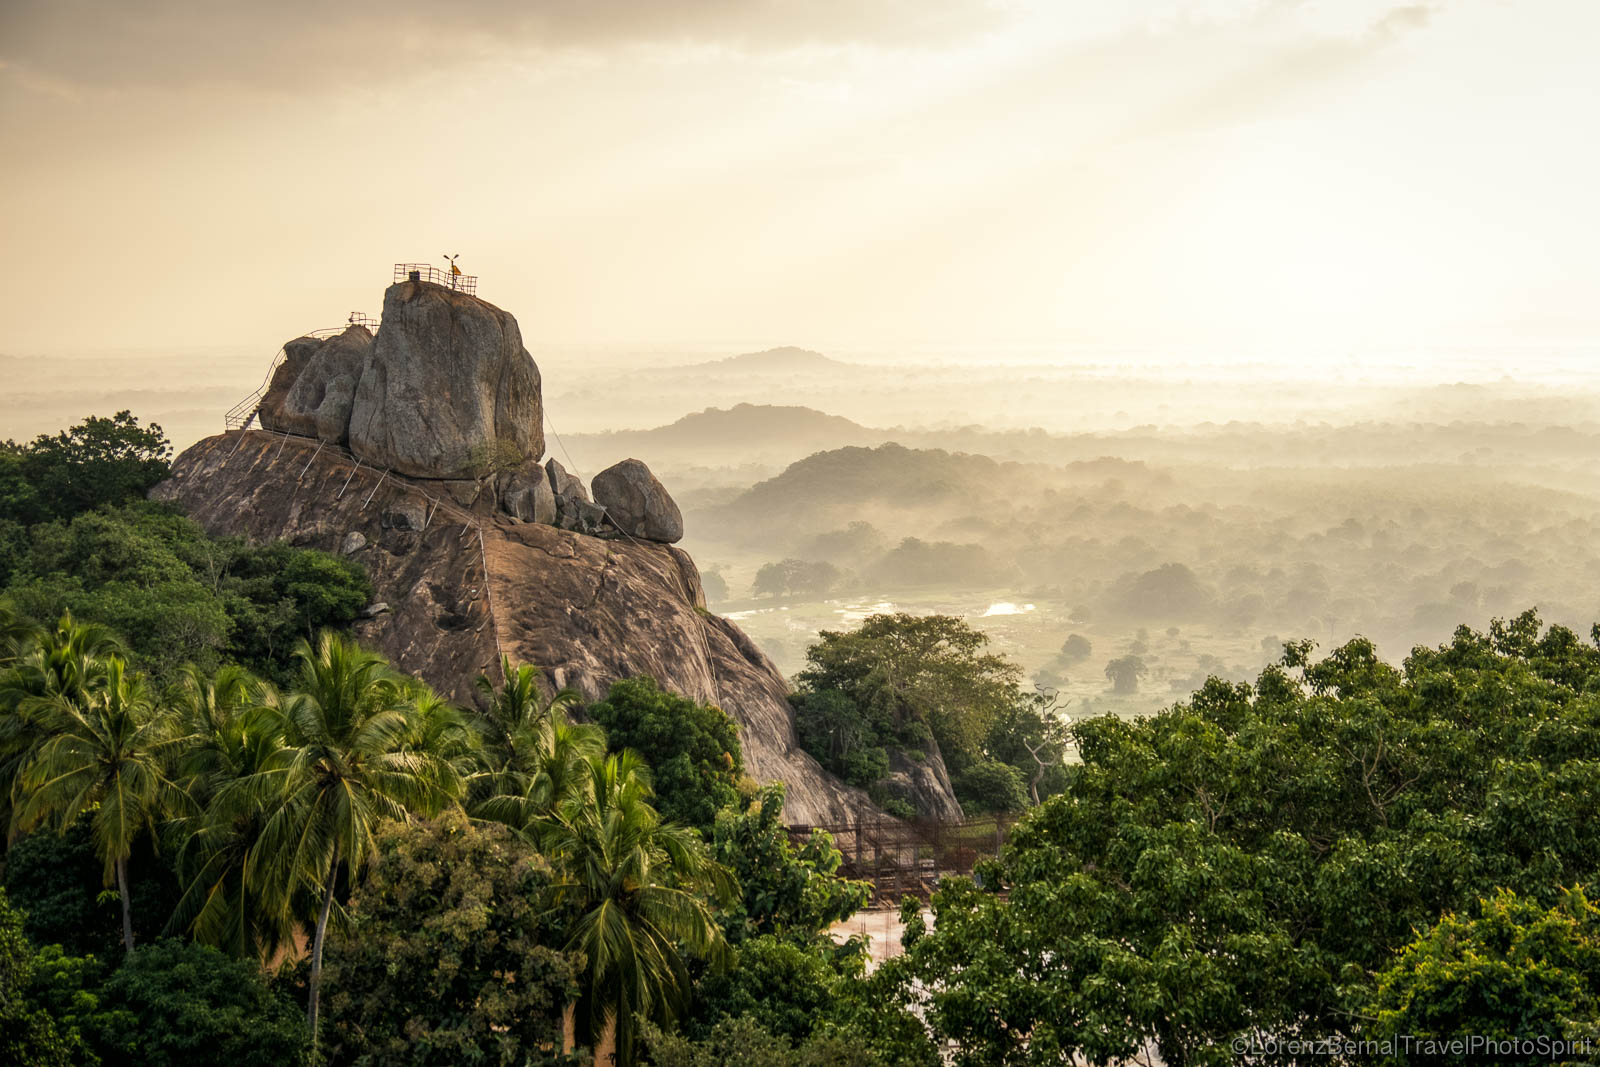 Mihintale Peak, first buddhist settlement in Sri Lanka - A travel photography by Lorenz Berna